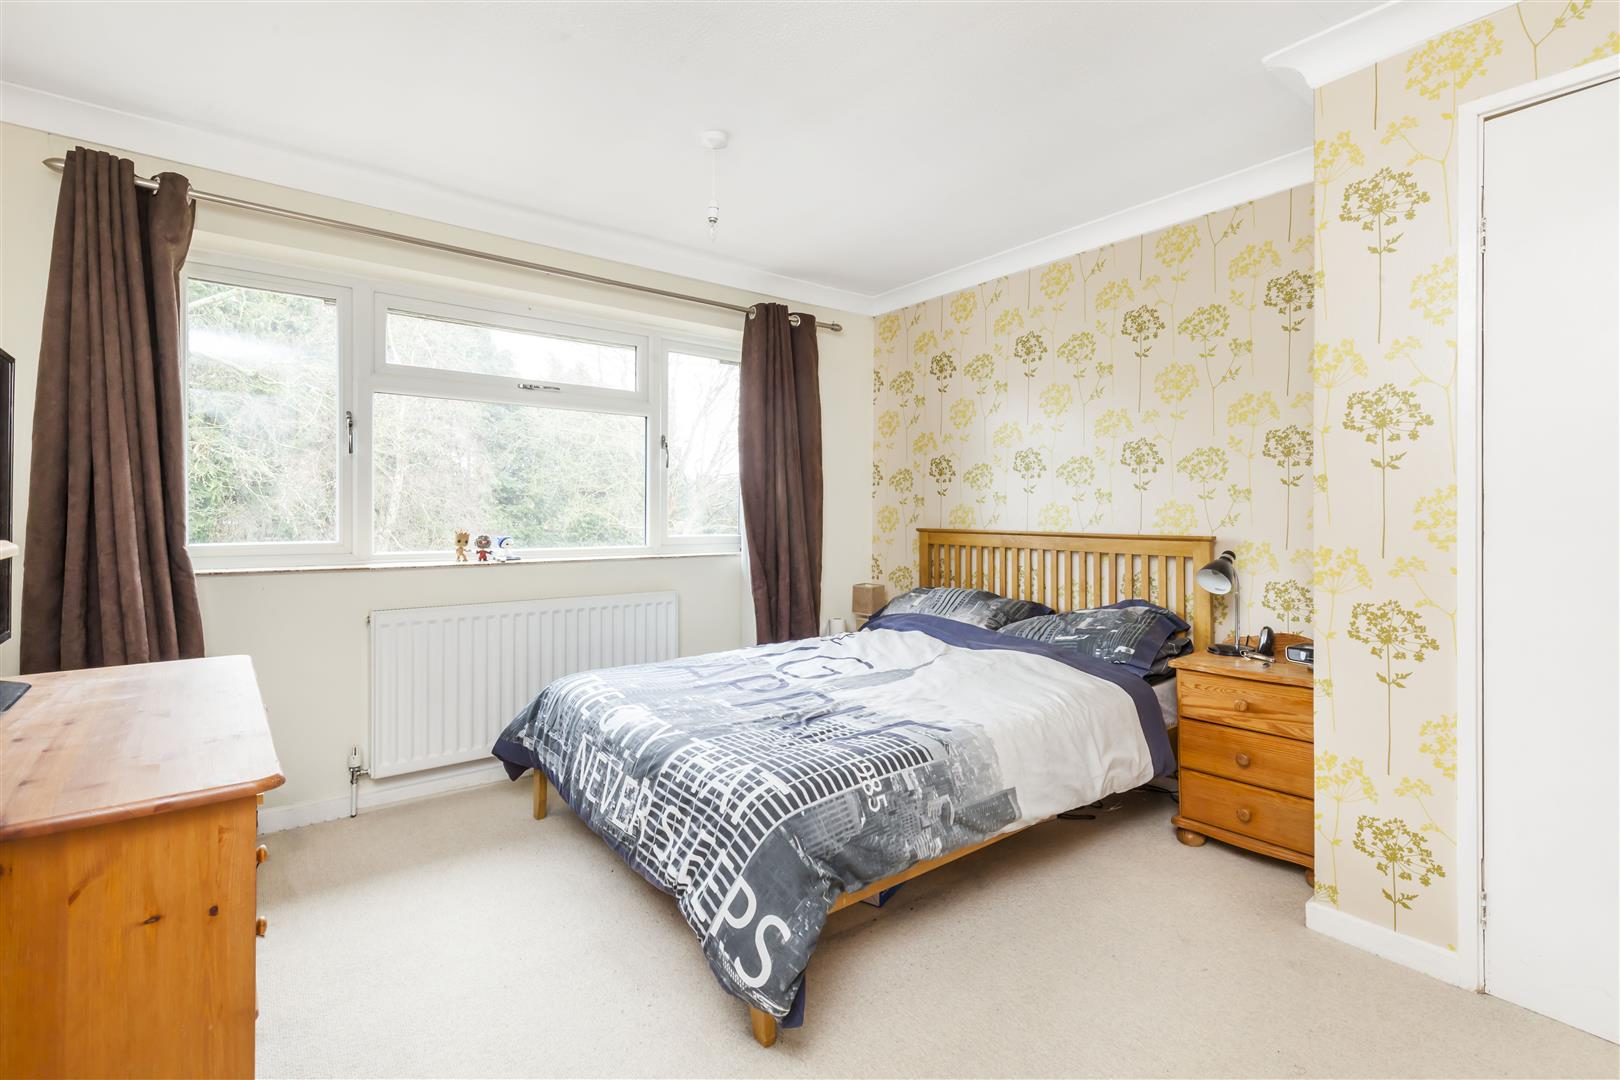 3 bed terraced-house for sale in Furnace Drive, Crawley 9